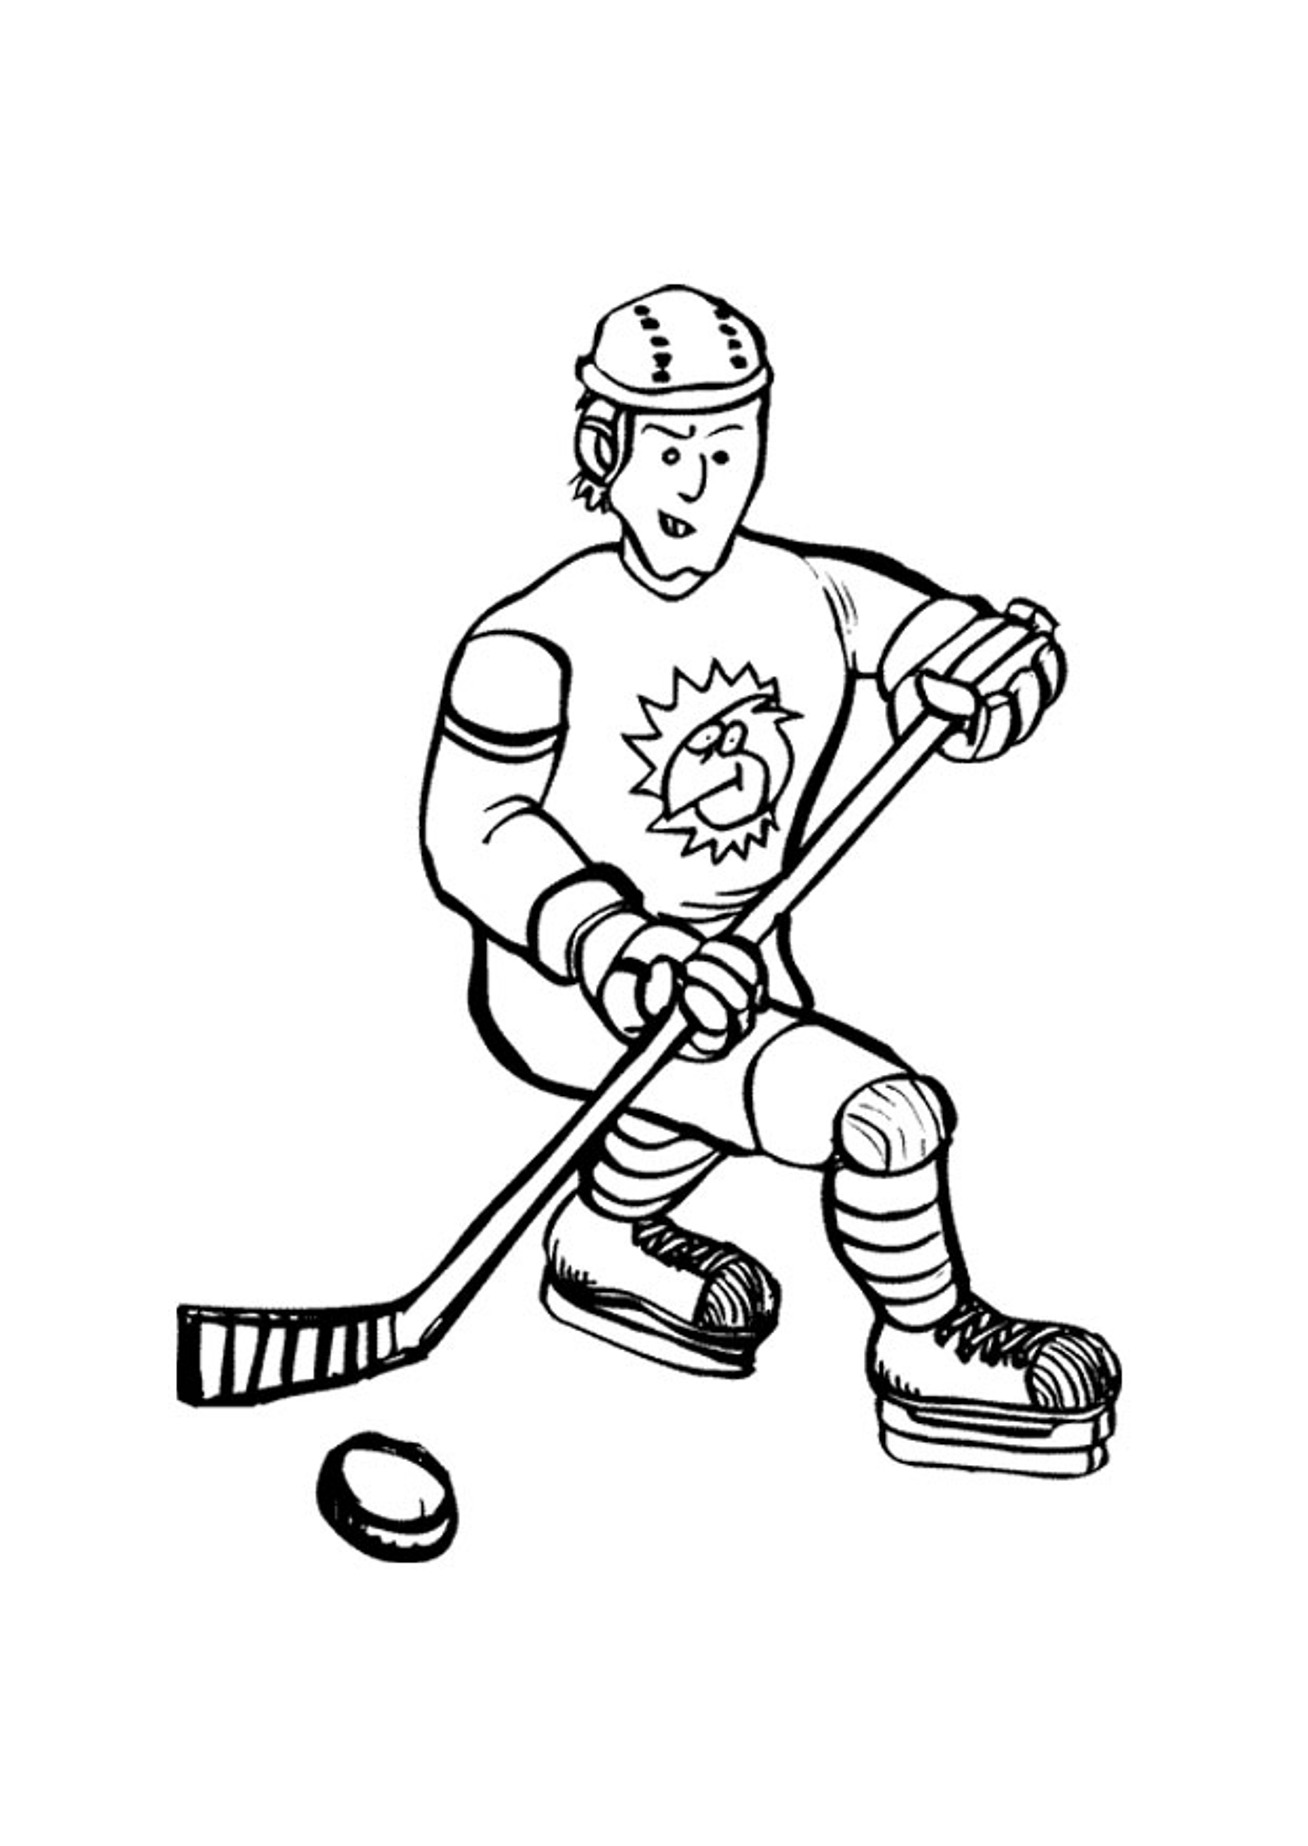 1308x1846 Hockey Coloring Pages All Coloring Pages